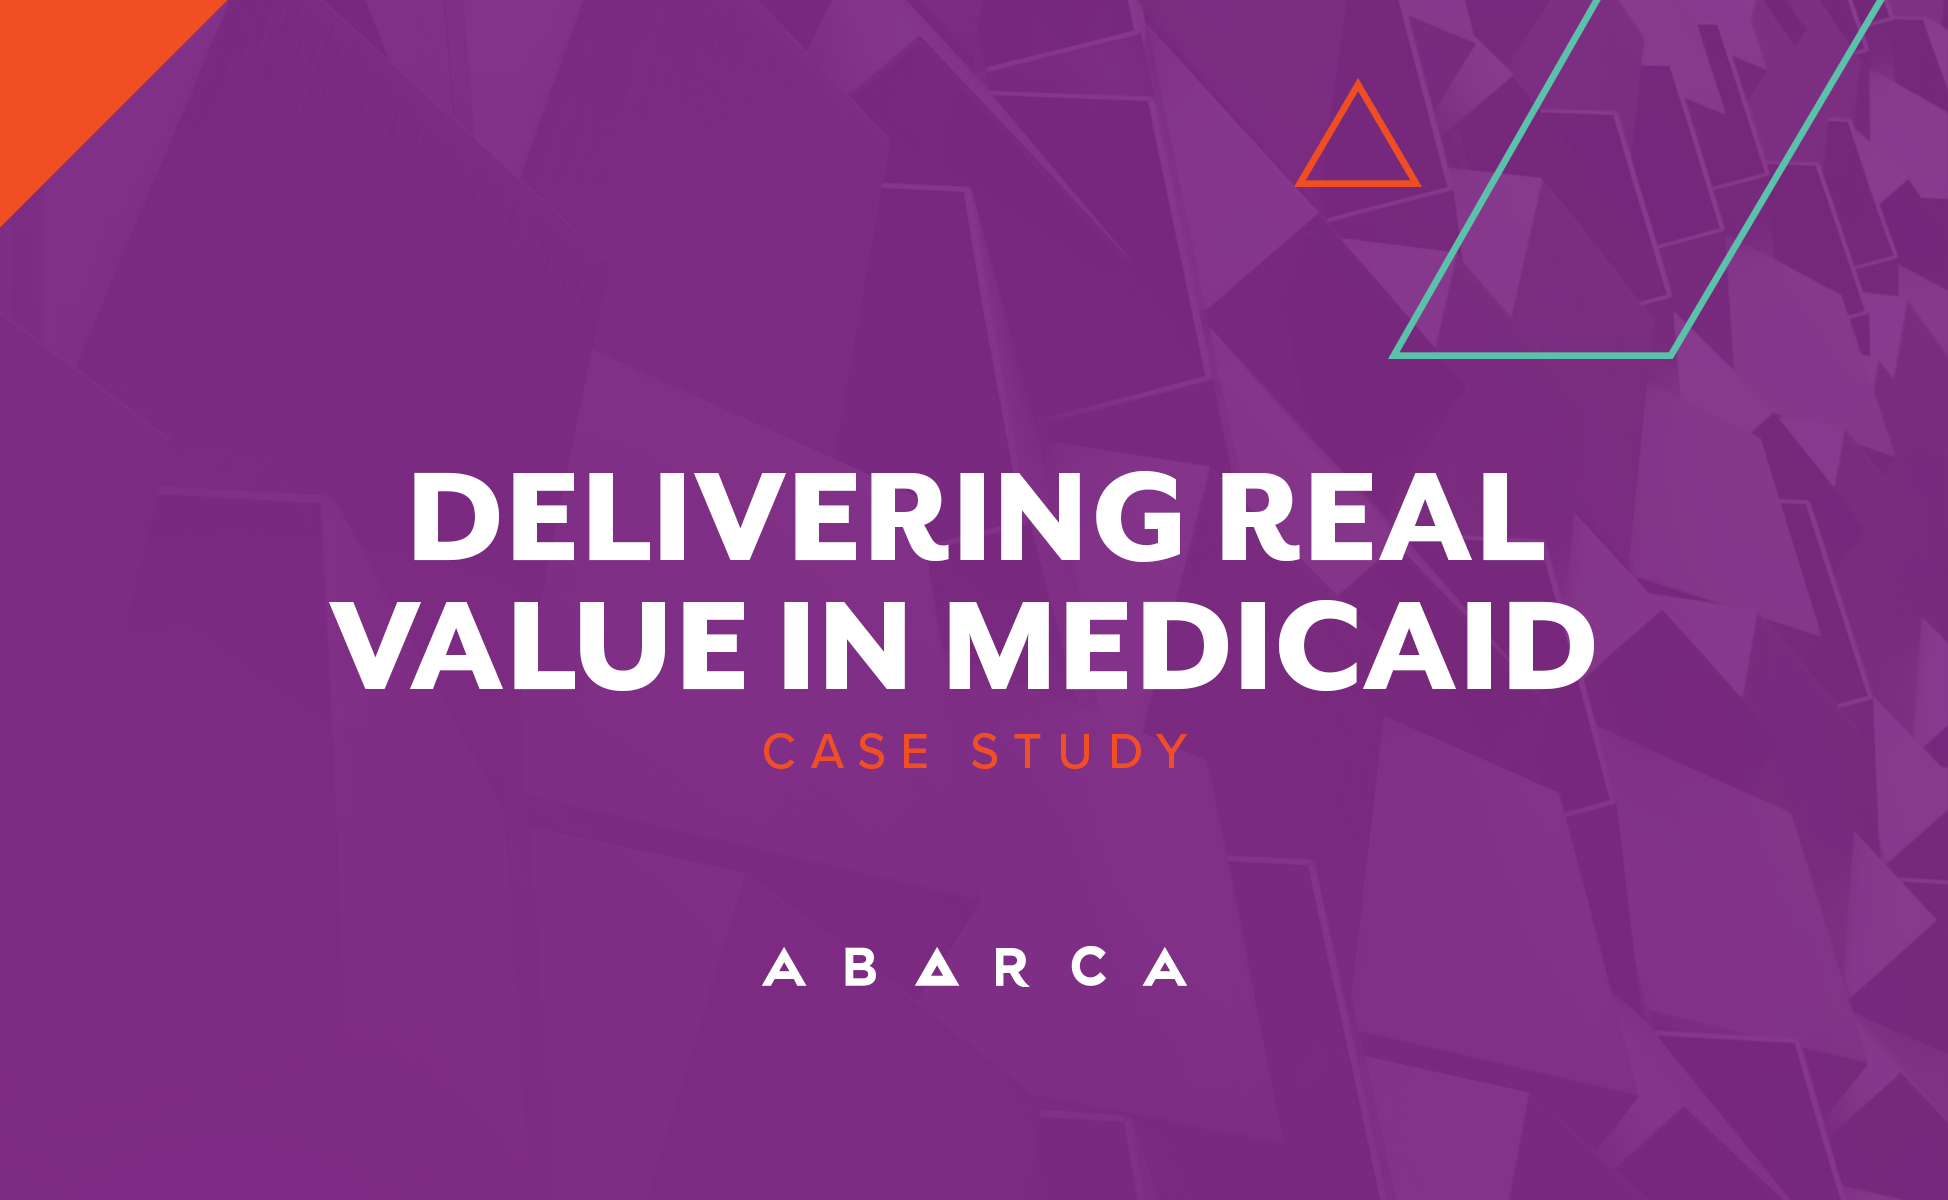 Abarca details first value-based agreement for Medicaid members prescribed Biogen products